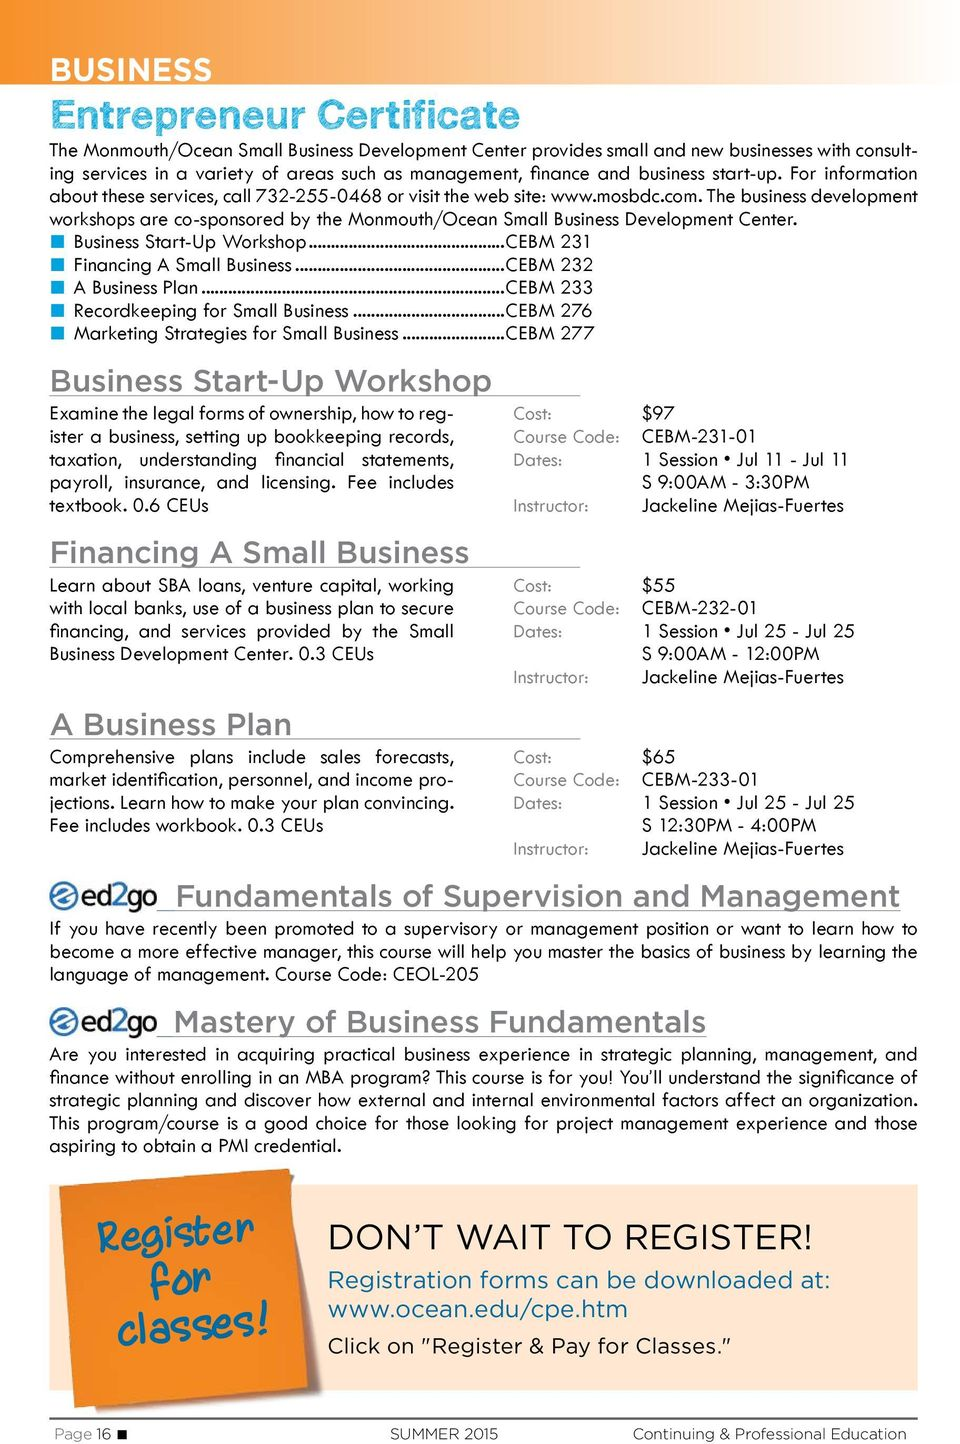 The business development workshops are co-sponsored by the Monmouth/Ocean Small Business Development Center. Business Start-Up Workshop...CEBM 231 Financing A Small Business...CEBM 232 A Business Plan.